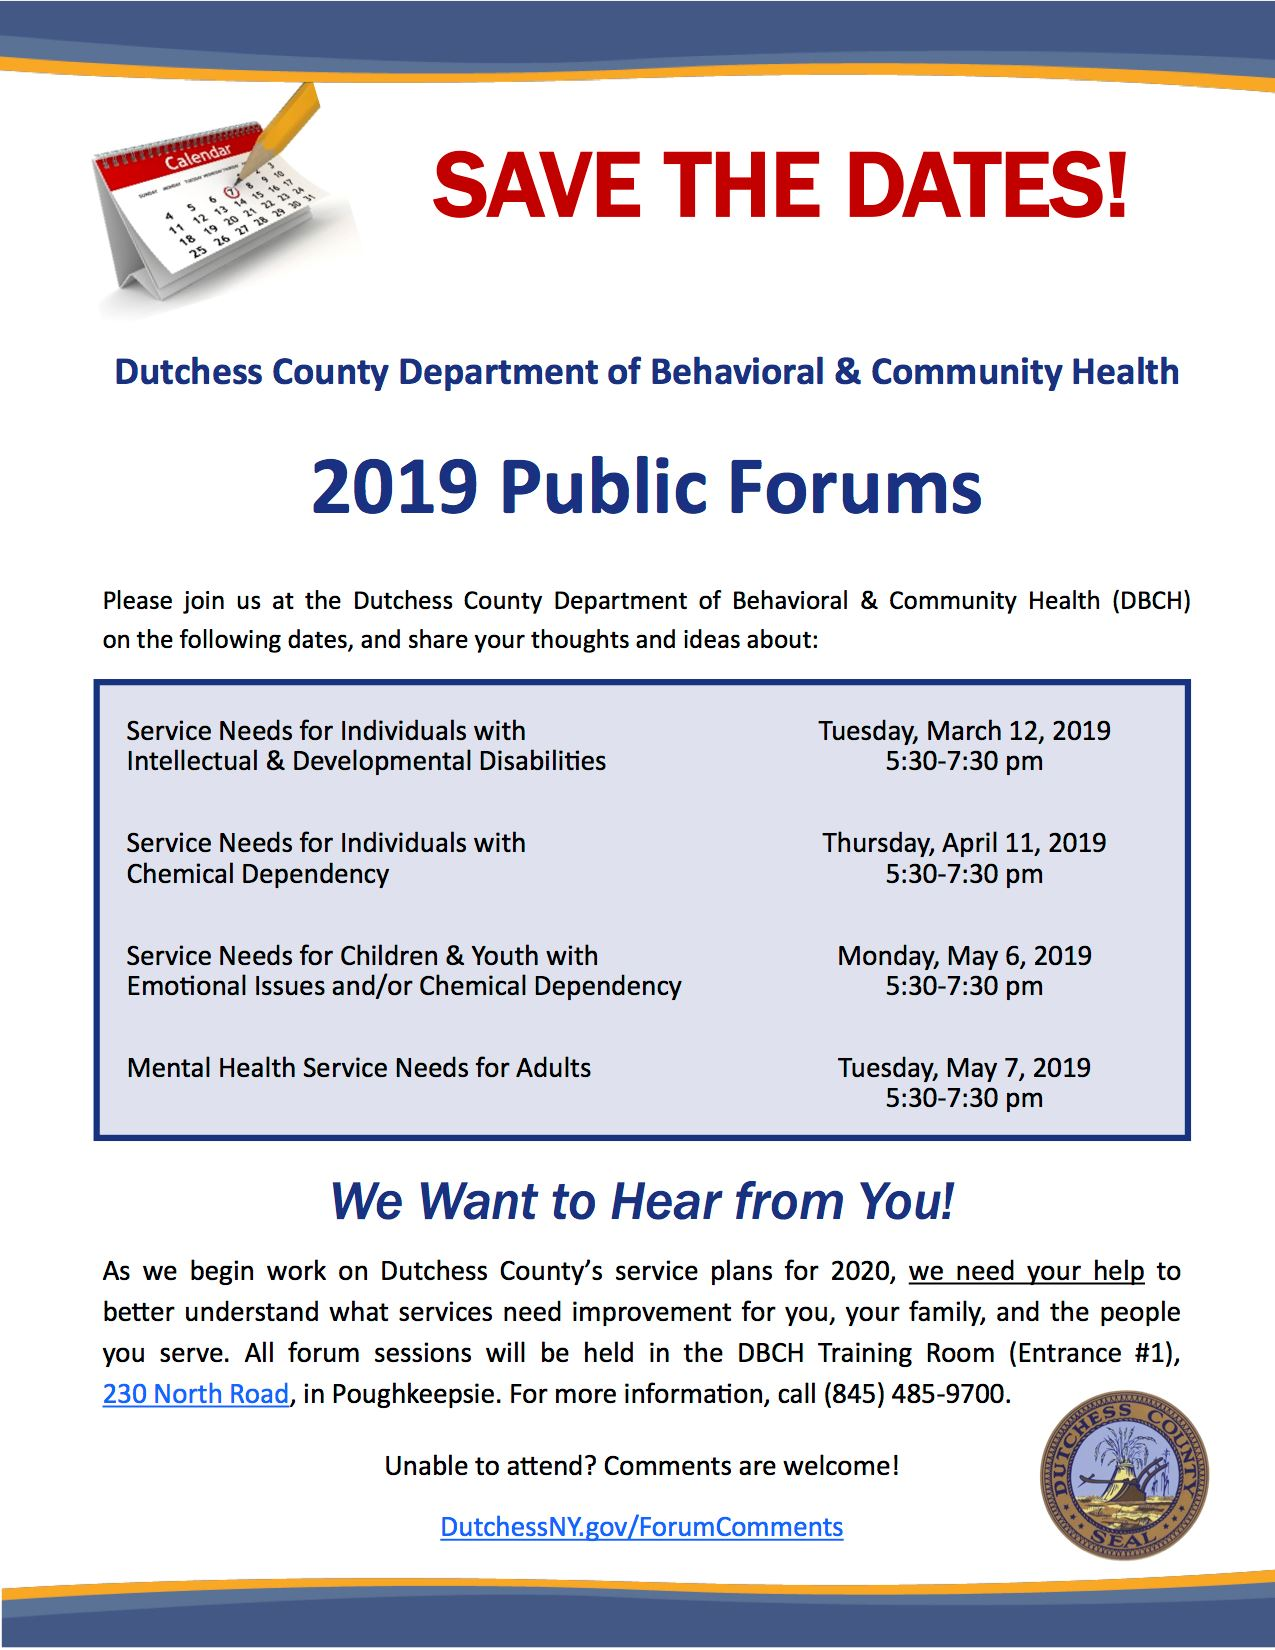 Dutchess County Department of Behavioral and Community Health 2019 Public Forums Flyer